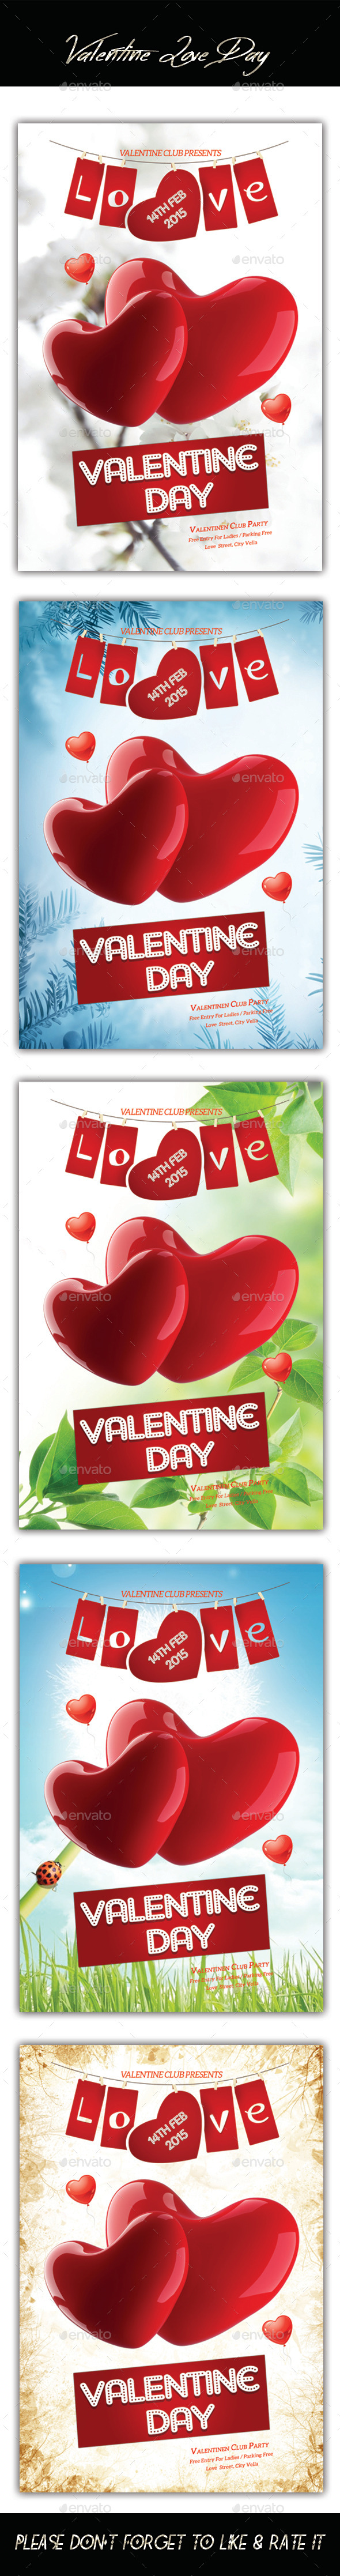 Valentines Love Day Flyer - Flyers Print Templates